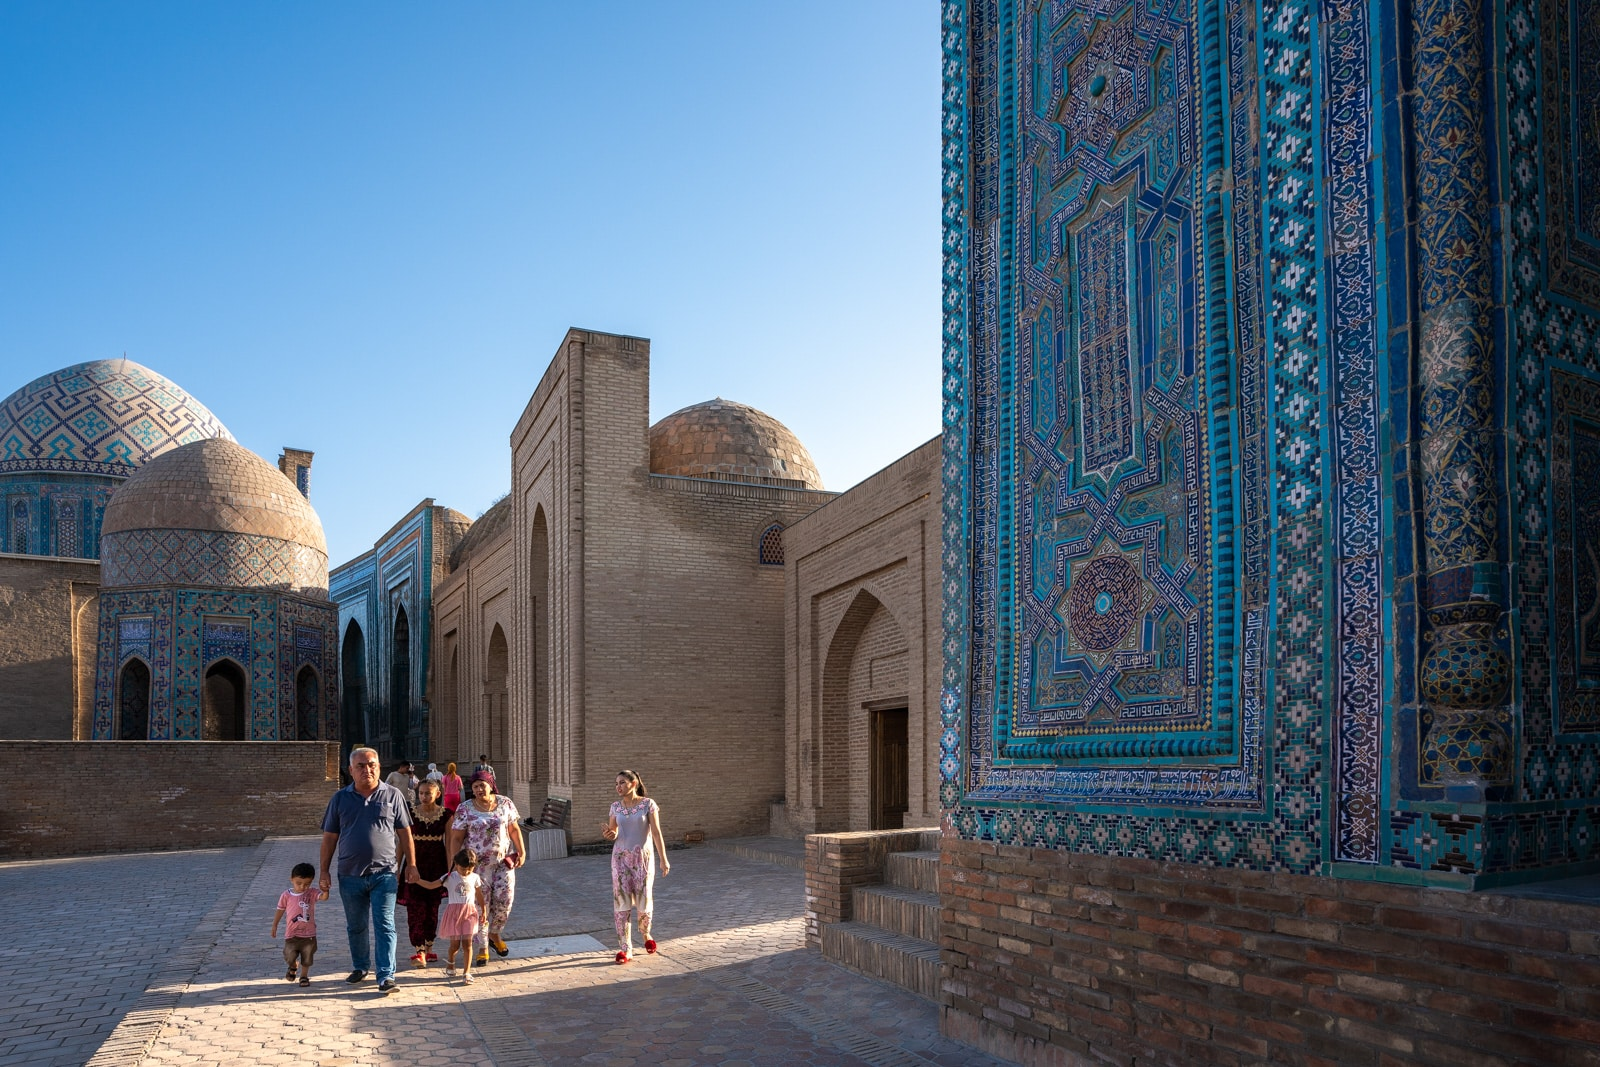 Family walking in evening at the Shah-i-Zinda necropolis in Samarkand, Uzbekistan